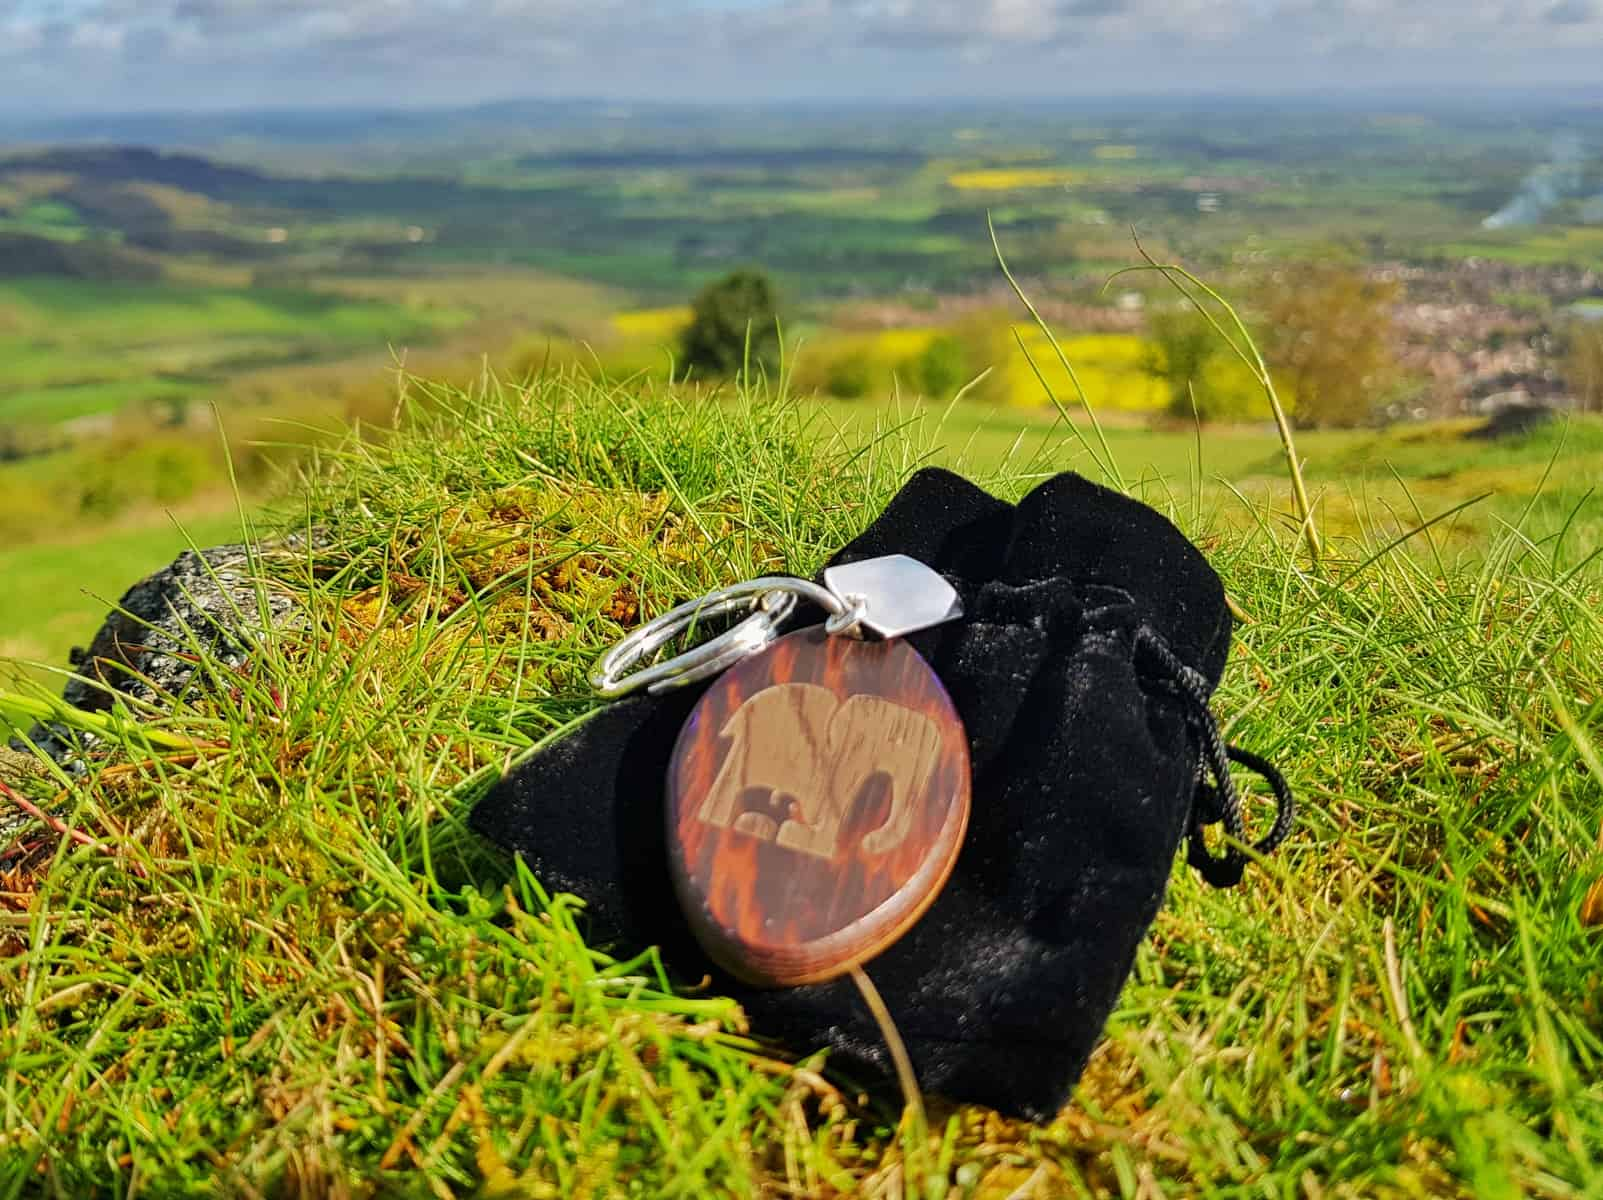 wooden keyring on black velvet bag, backdrop hillside